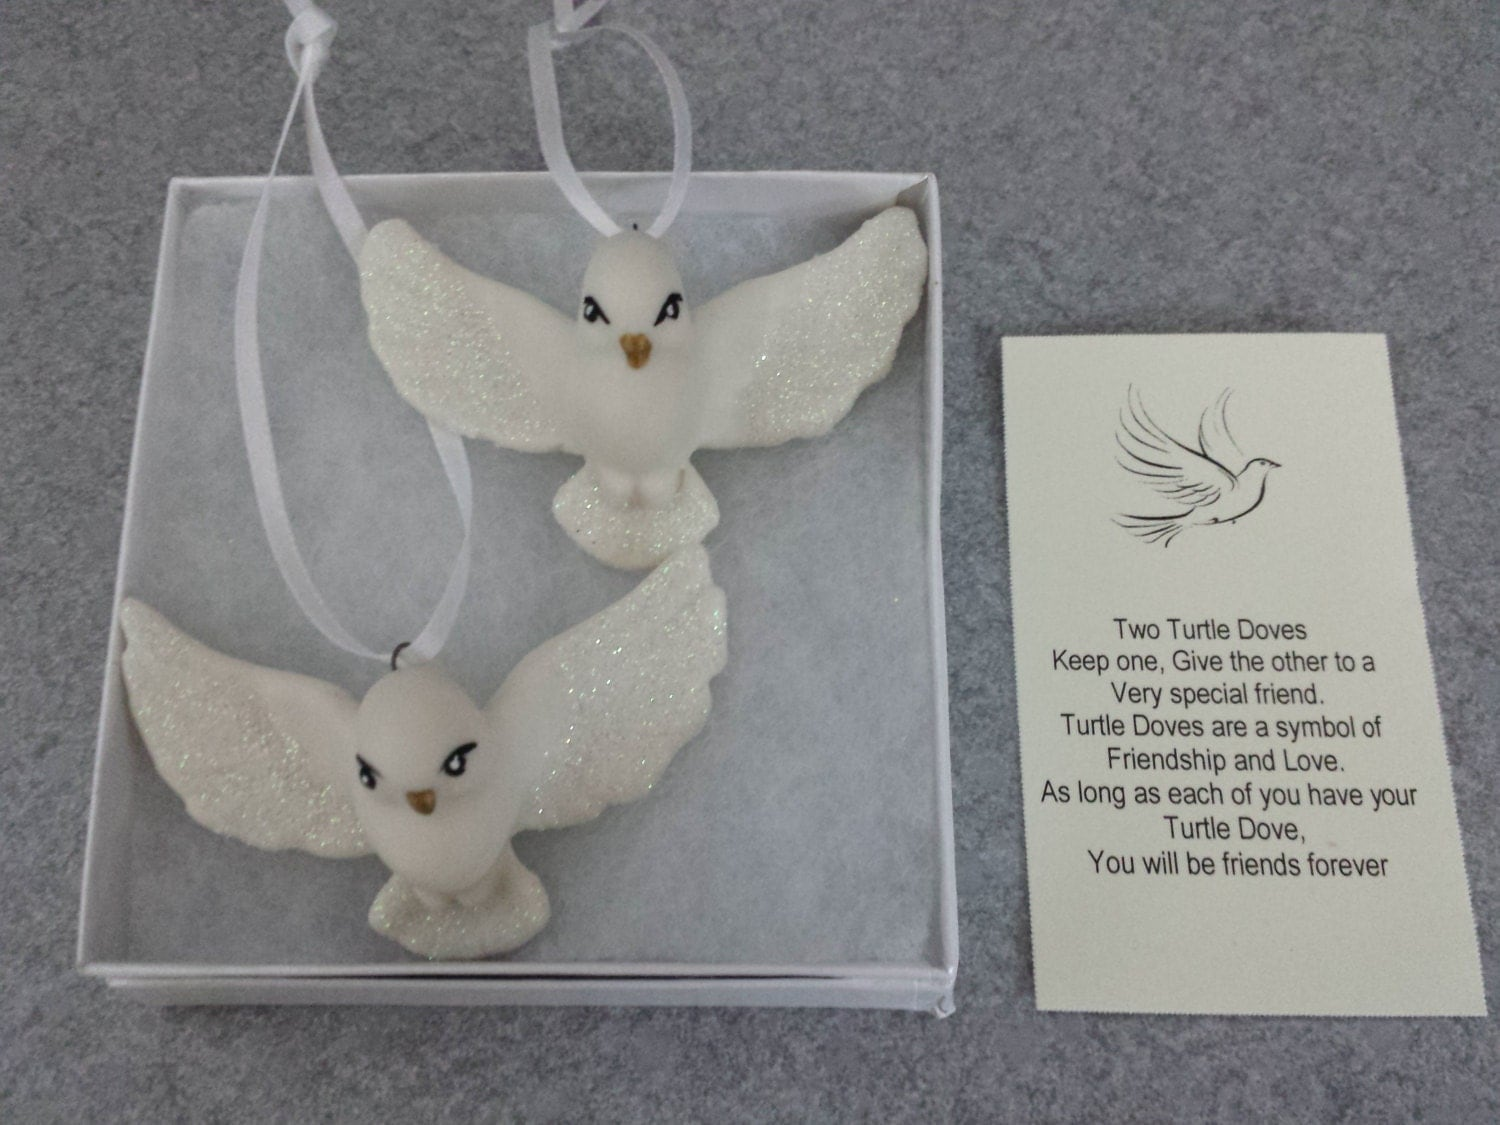 Wedding Gift Ornaments: Two Turtle Doves Ornaments The BFF Gift Wedding